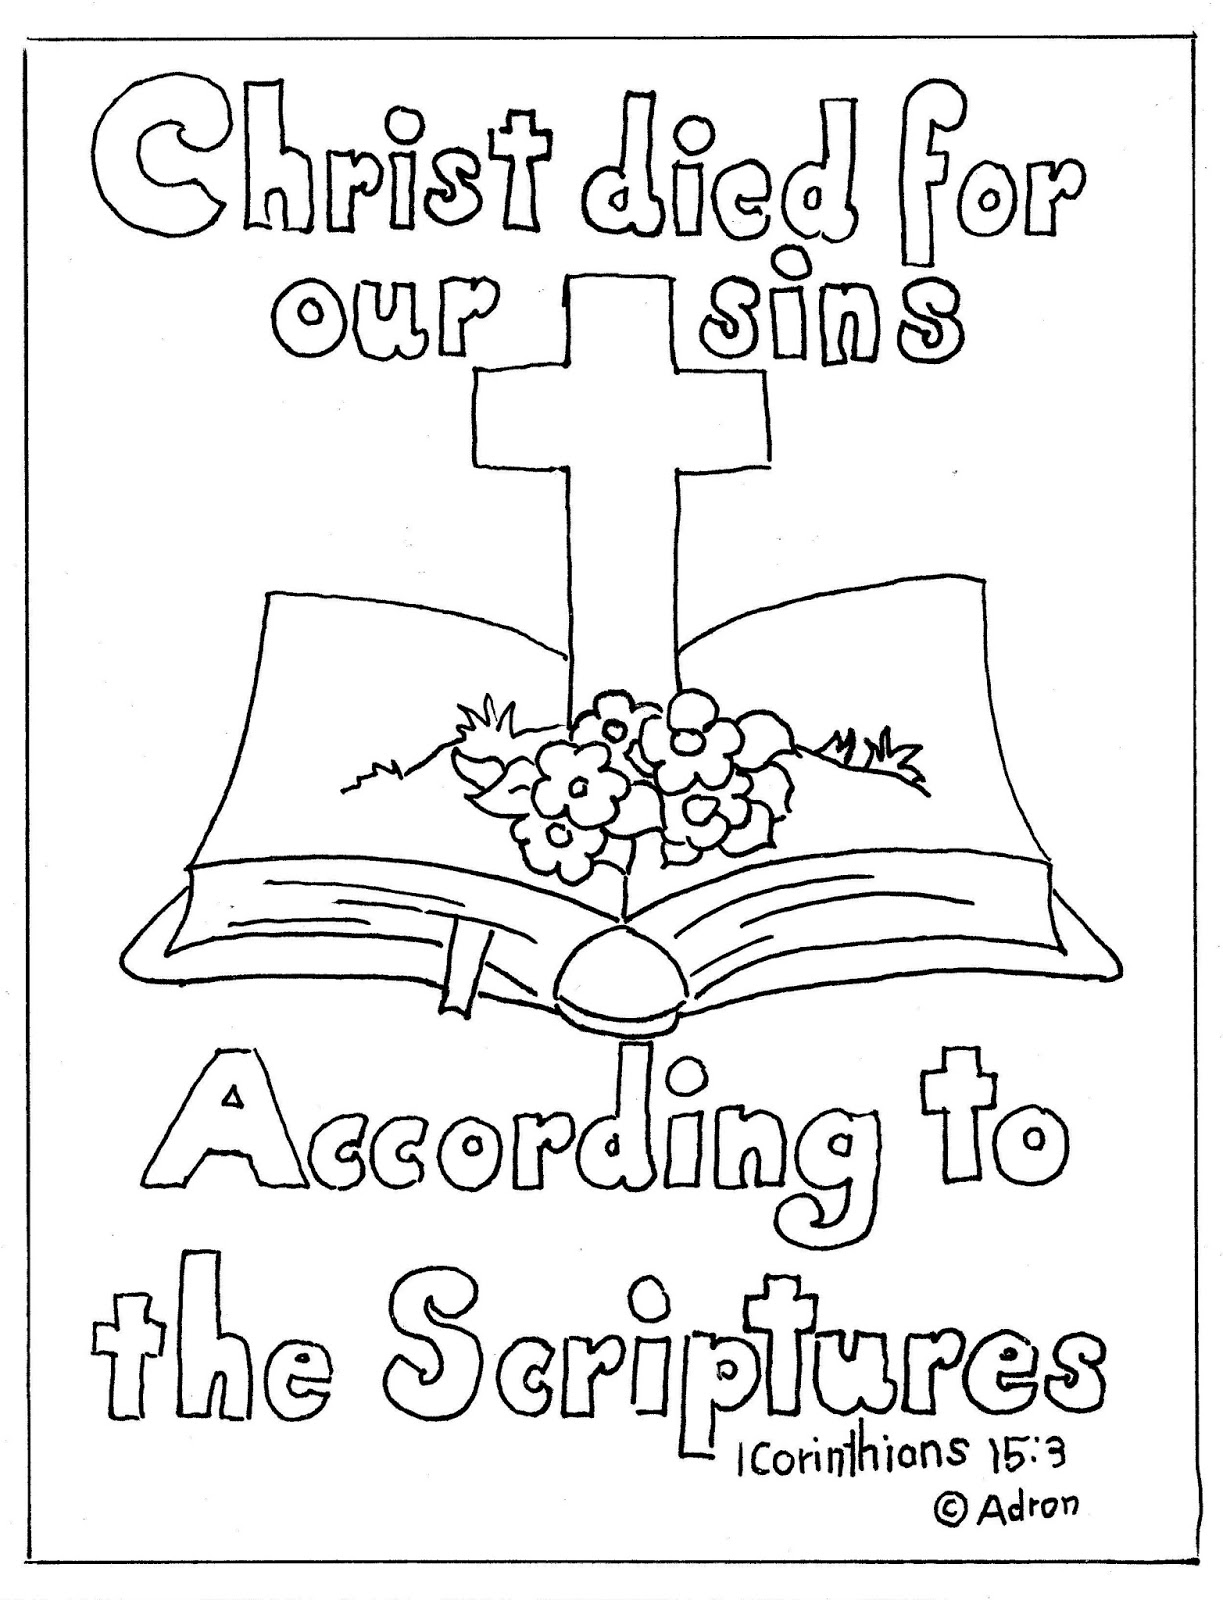 printable 1 corinthians 12 coloring pages coloring pages for kids by mr adron printable coloring 1 corinthians 12 pages